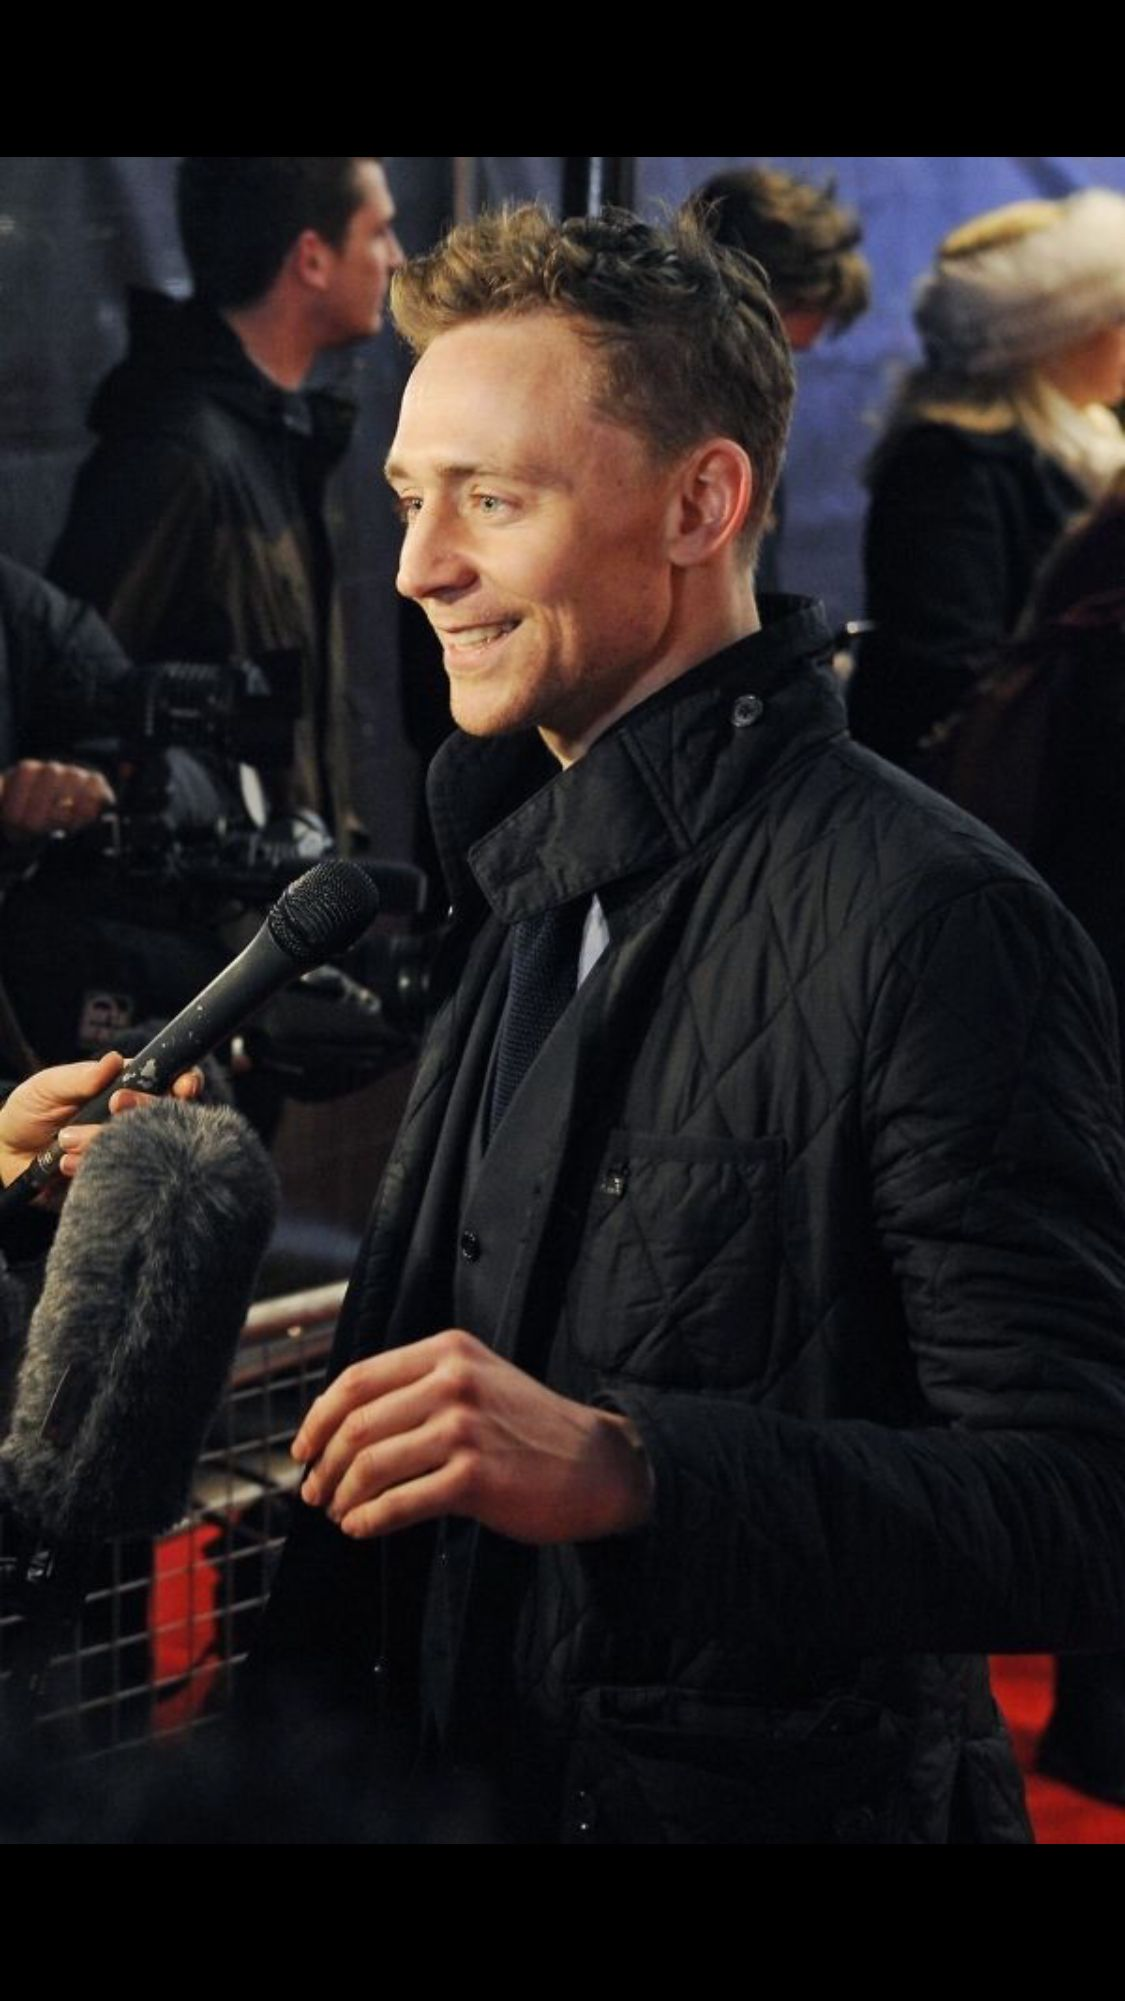 Pin by Desdamona_falls on Tom Hiddleston and other life ruiners (but